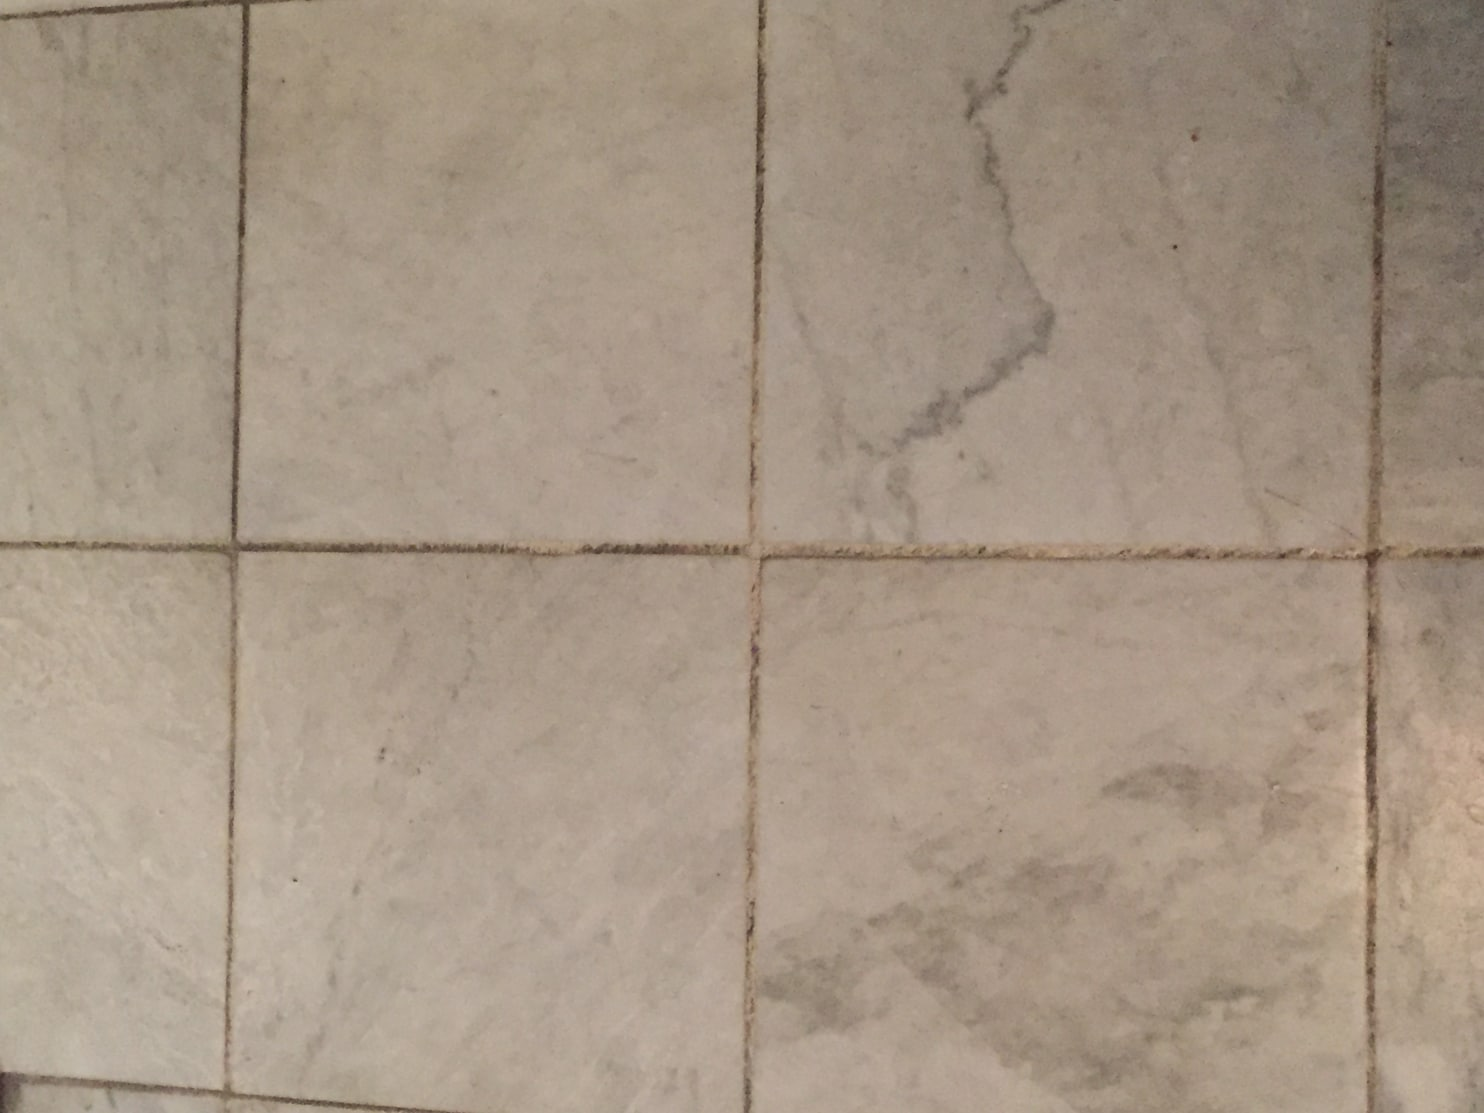 How To Clean Old Dirty Grout Without Damaging Marble Tiles The Washington Post